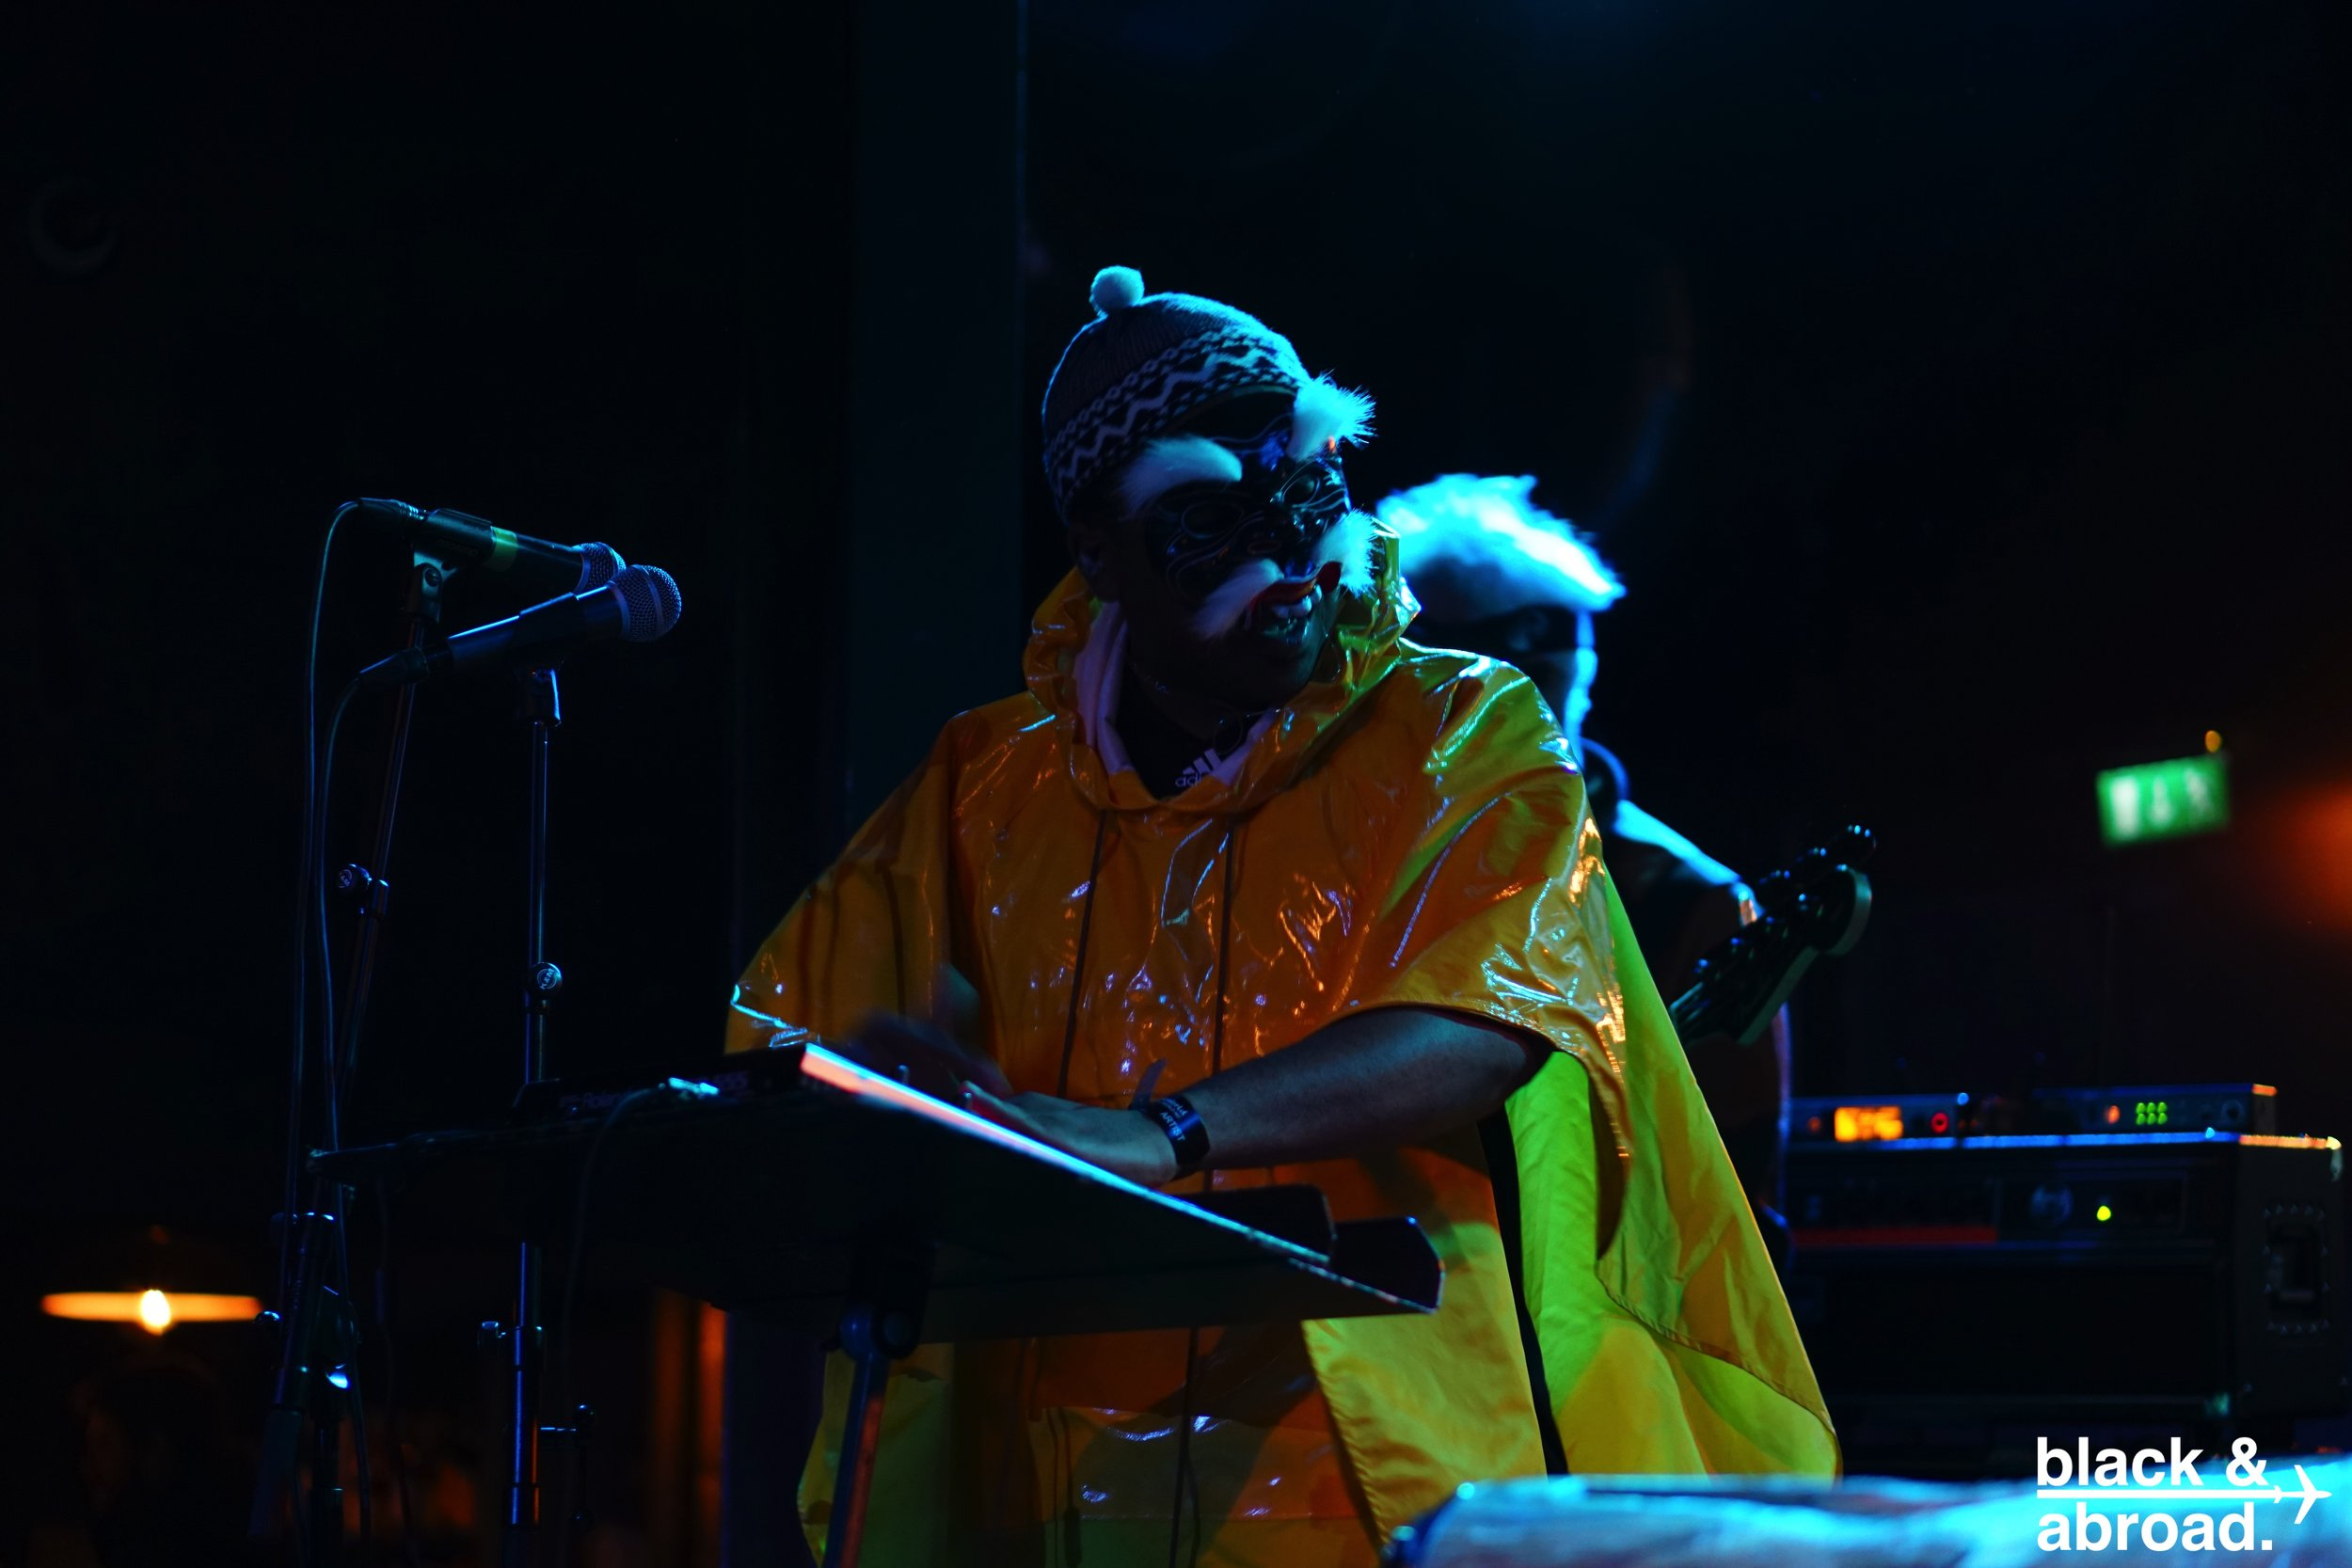 Spoek Mathambo, an artist from South Africa performing during the second night of the festival.